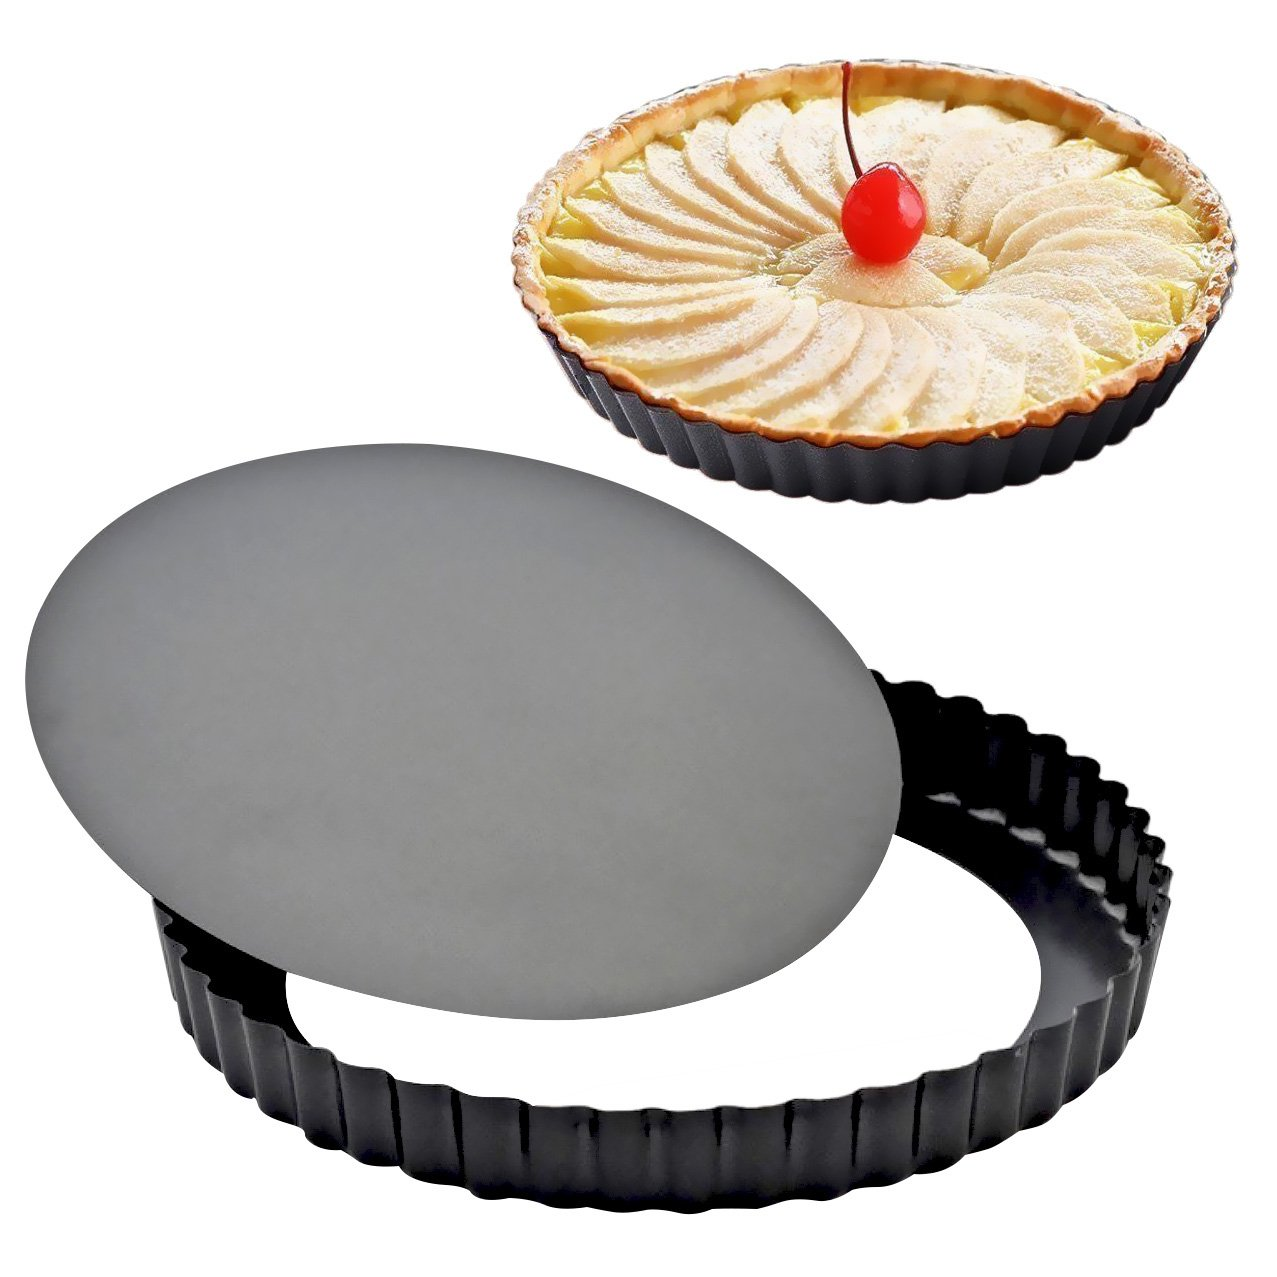 Attmu 8 Inches Non-Stick Removable Loose Bottom Quiche Tart Pan (2 Pack), Tart Pie Pan, Round Tart Quiche Pan with Removable Base BBB-042